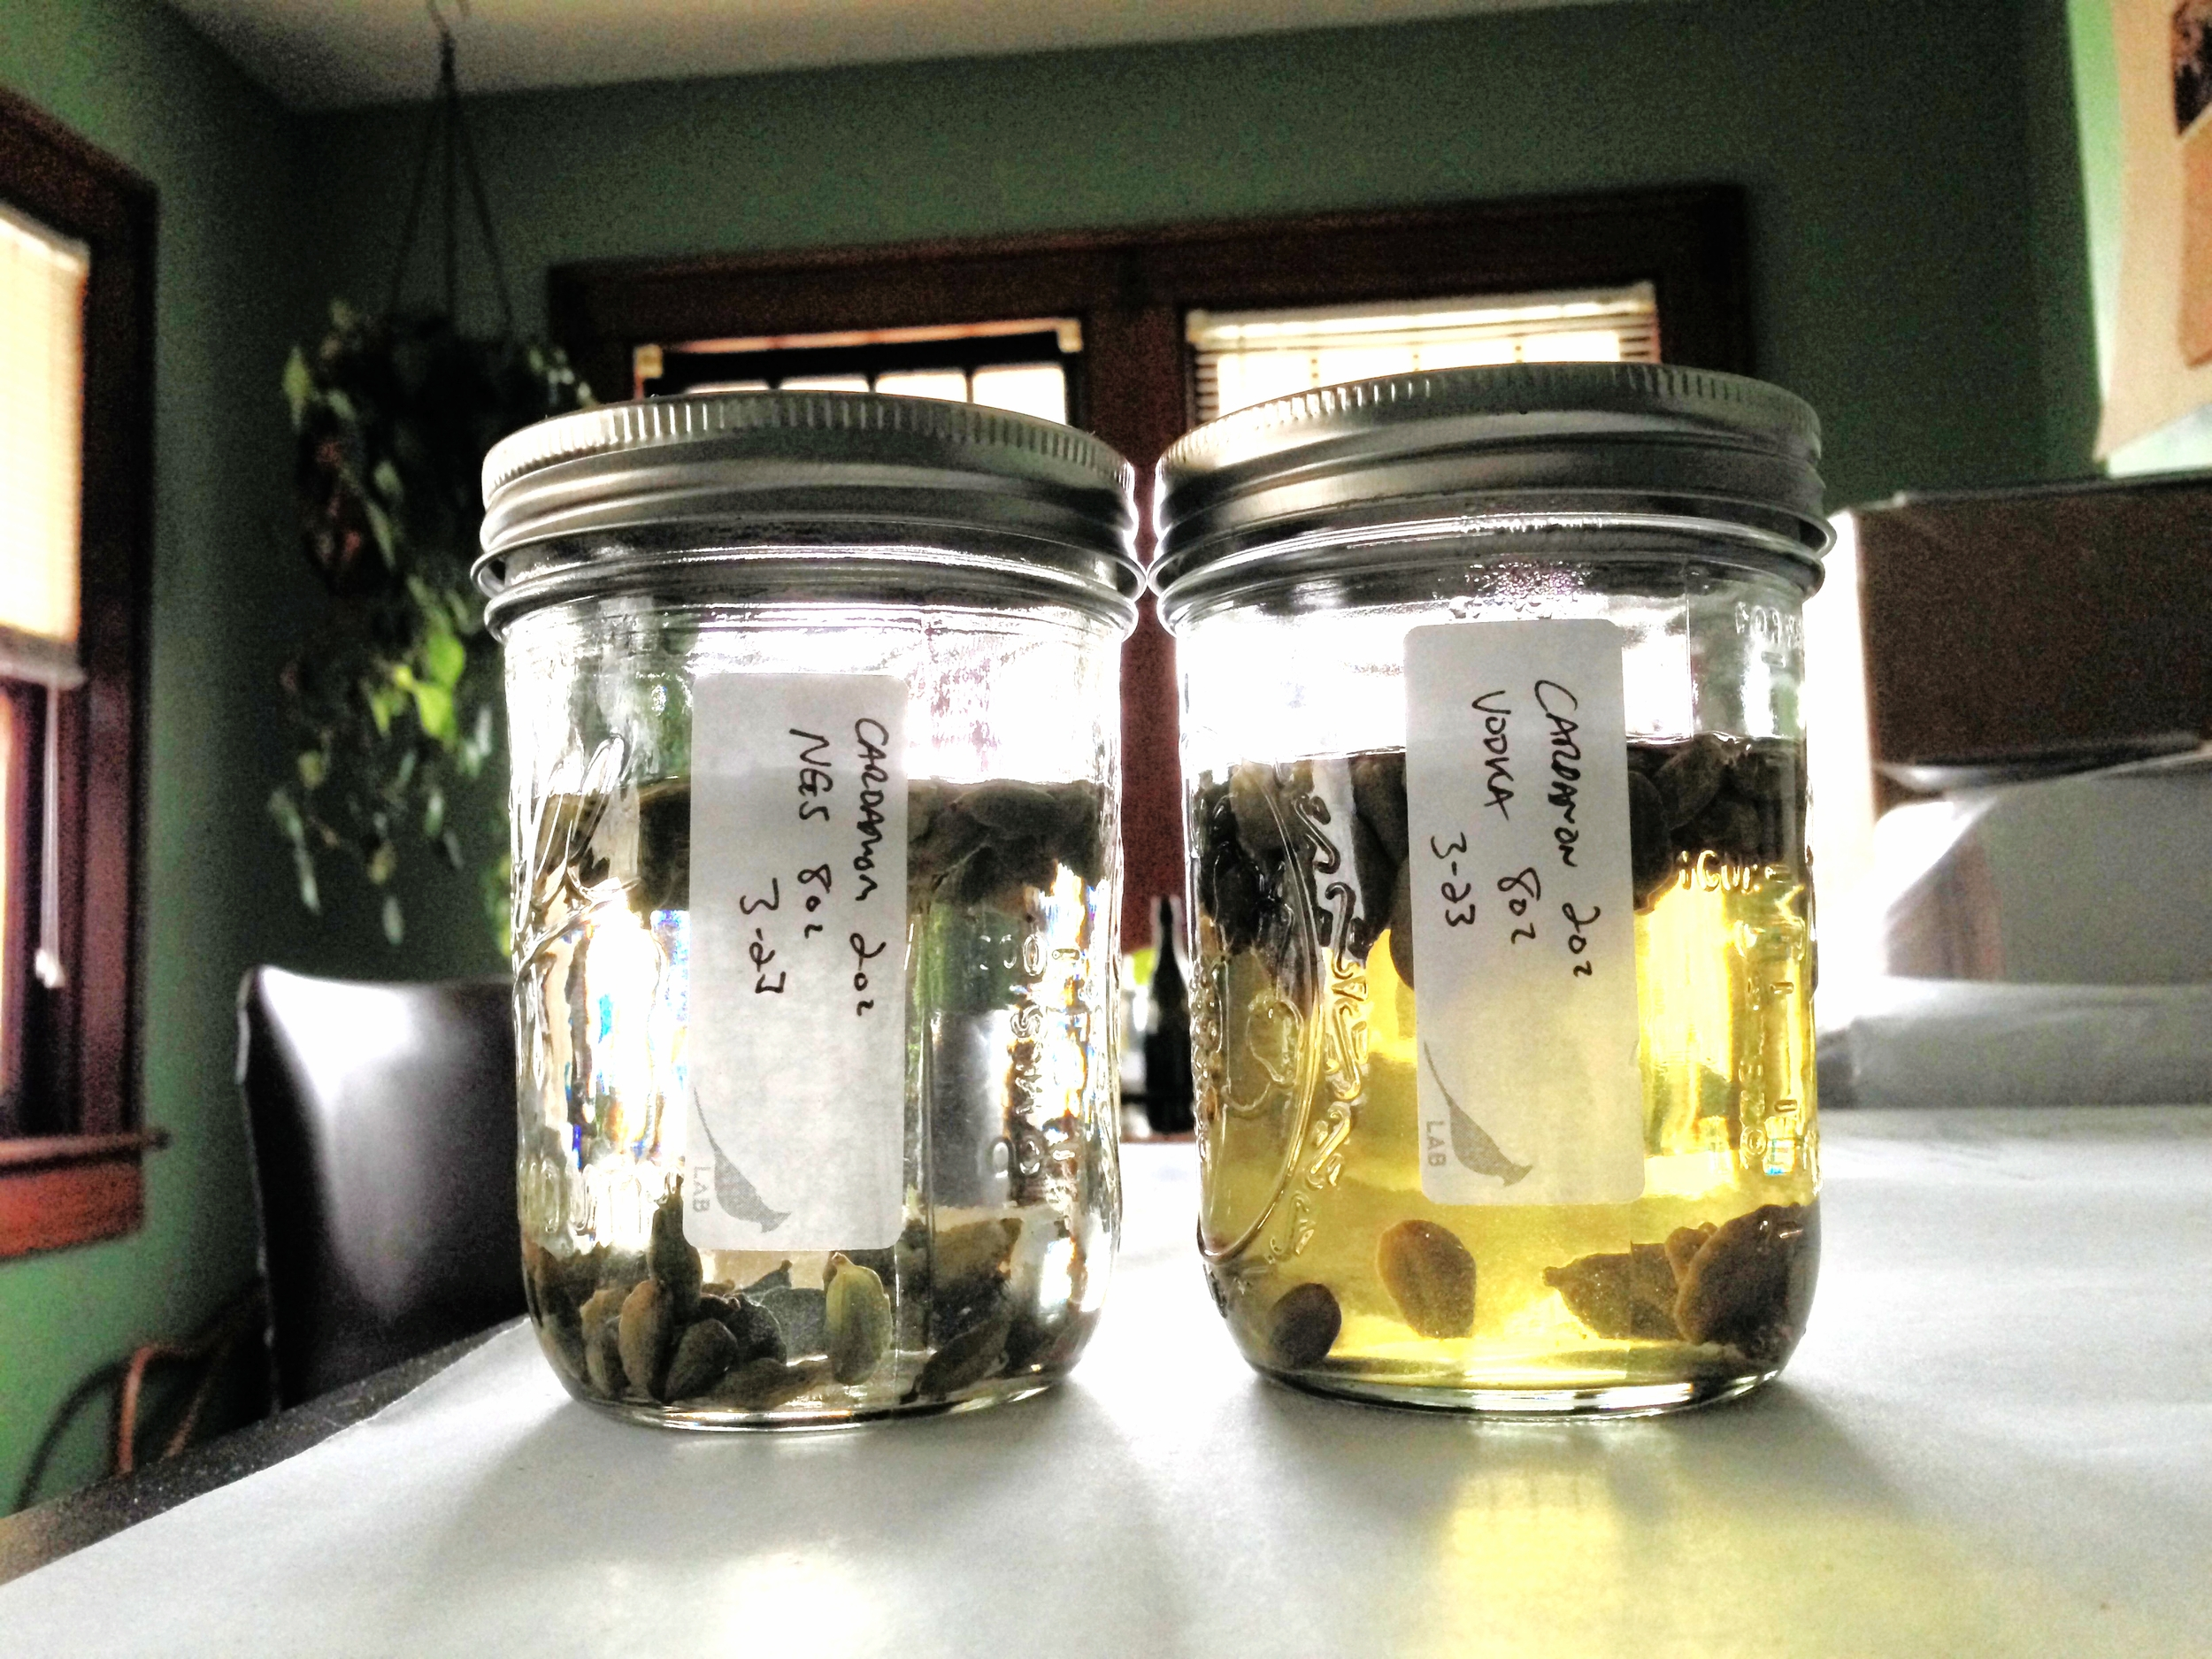 Cardamom extraction after 48hrs in 95% ABV NGS on left - 40% ABV vodka on right